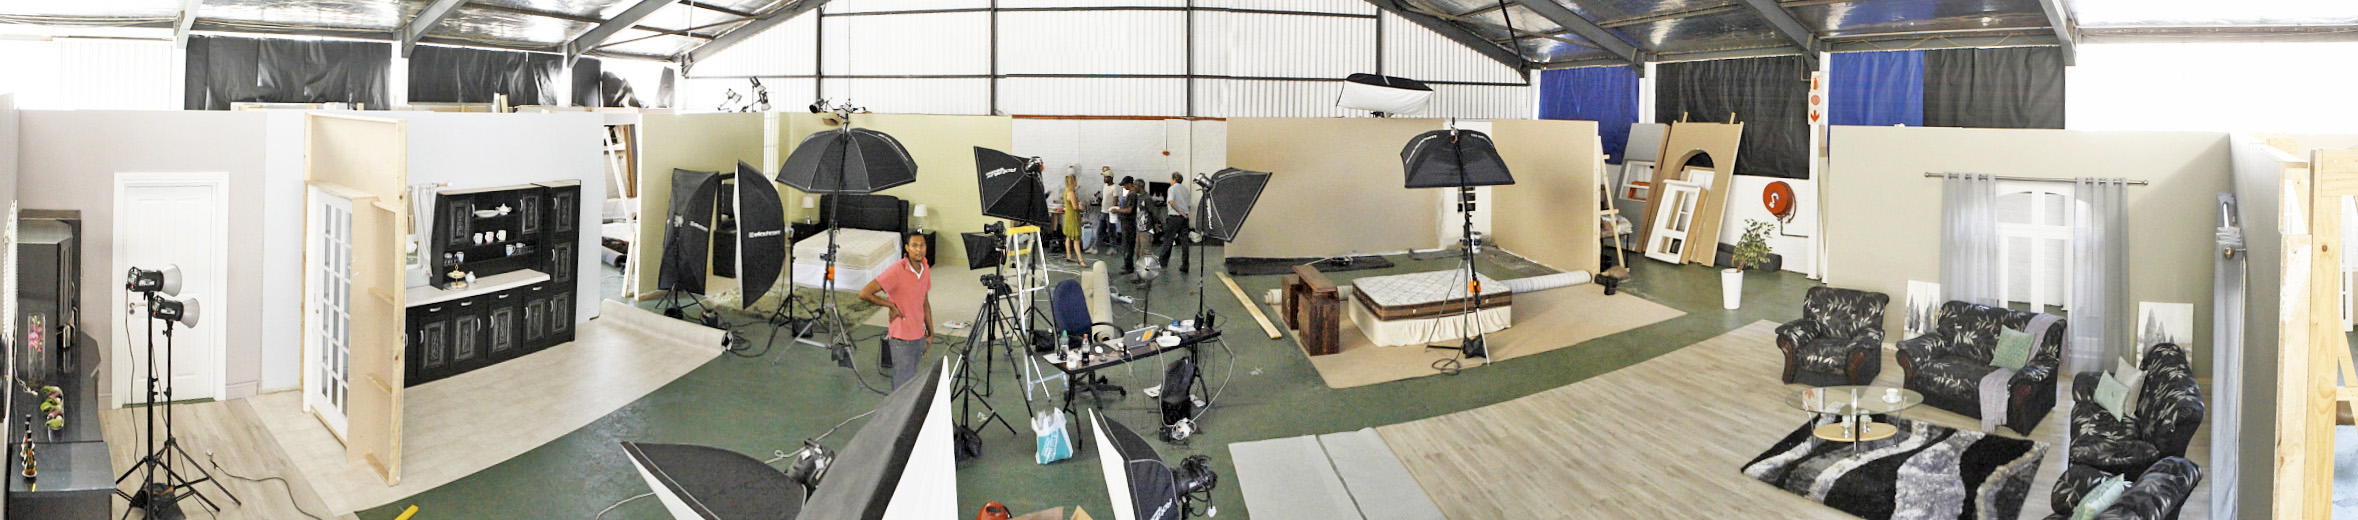 sets Pano2 28 march 2012.jpg